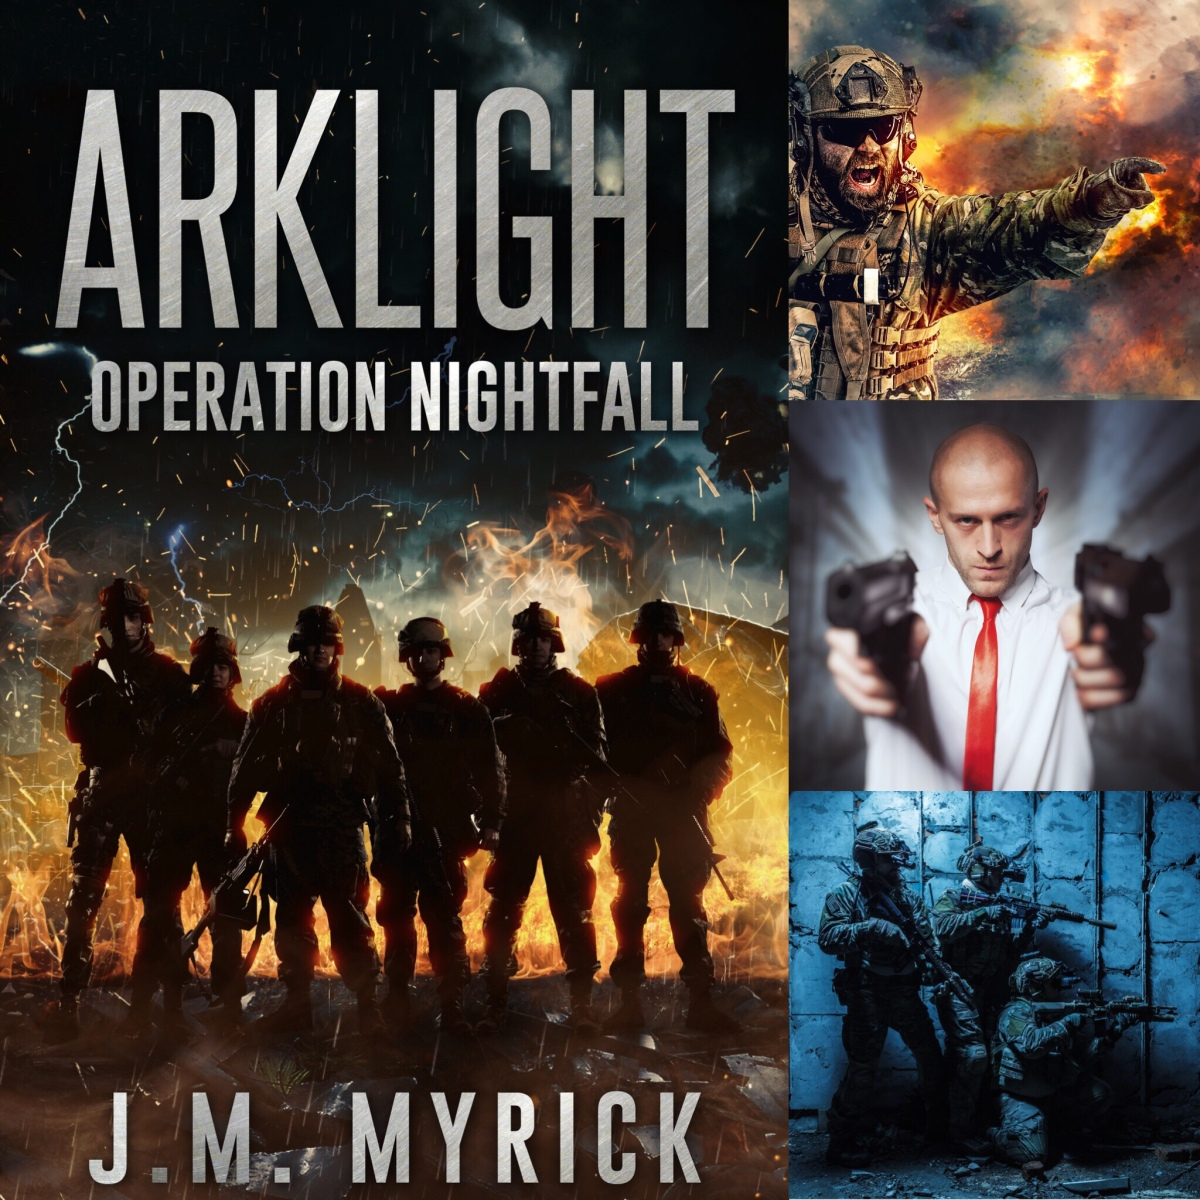 Arklight is trending! Buy your copy today!